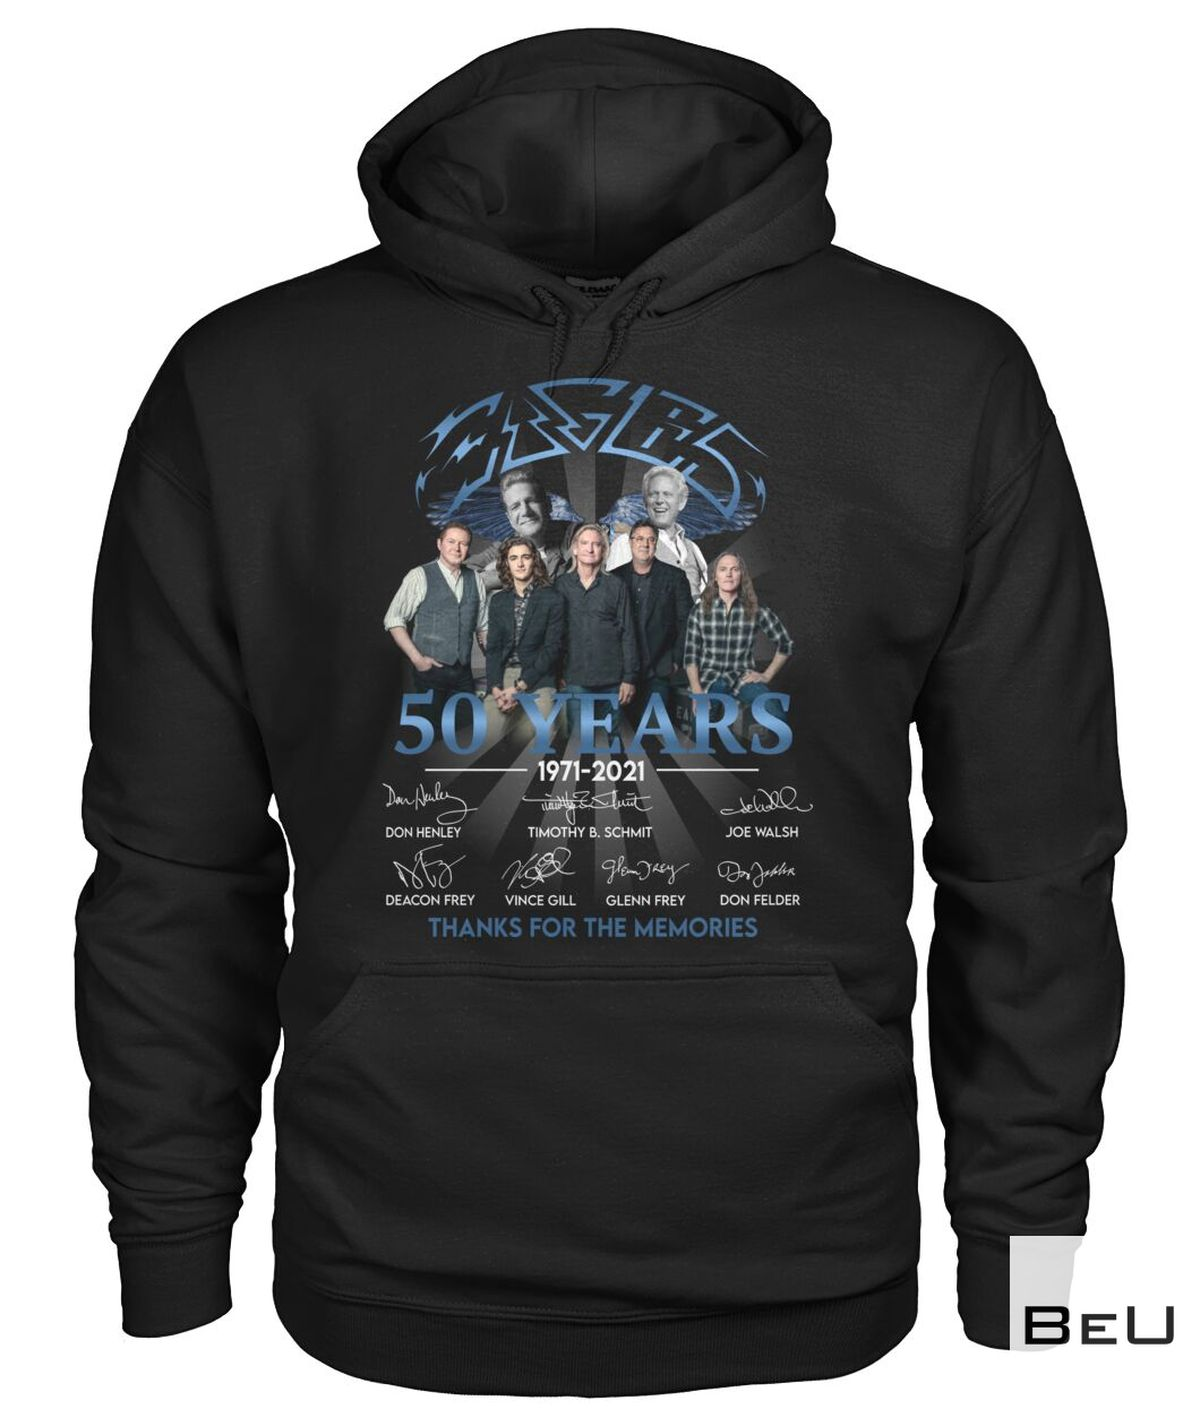 Eagles Rock Band 50 Years Thank You For The Memories Shirt a